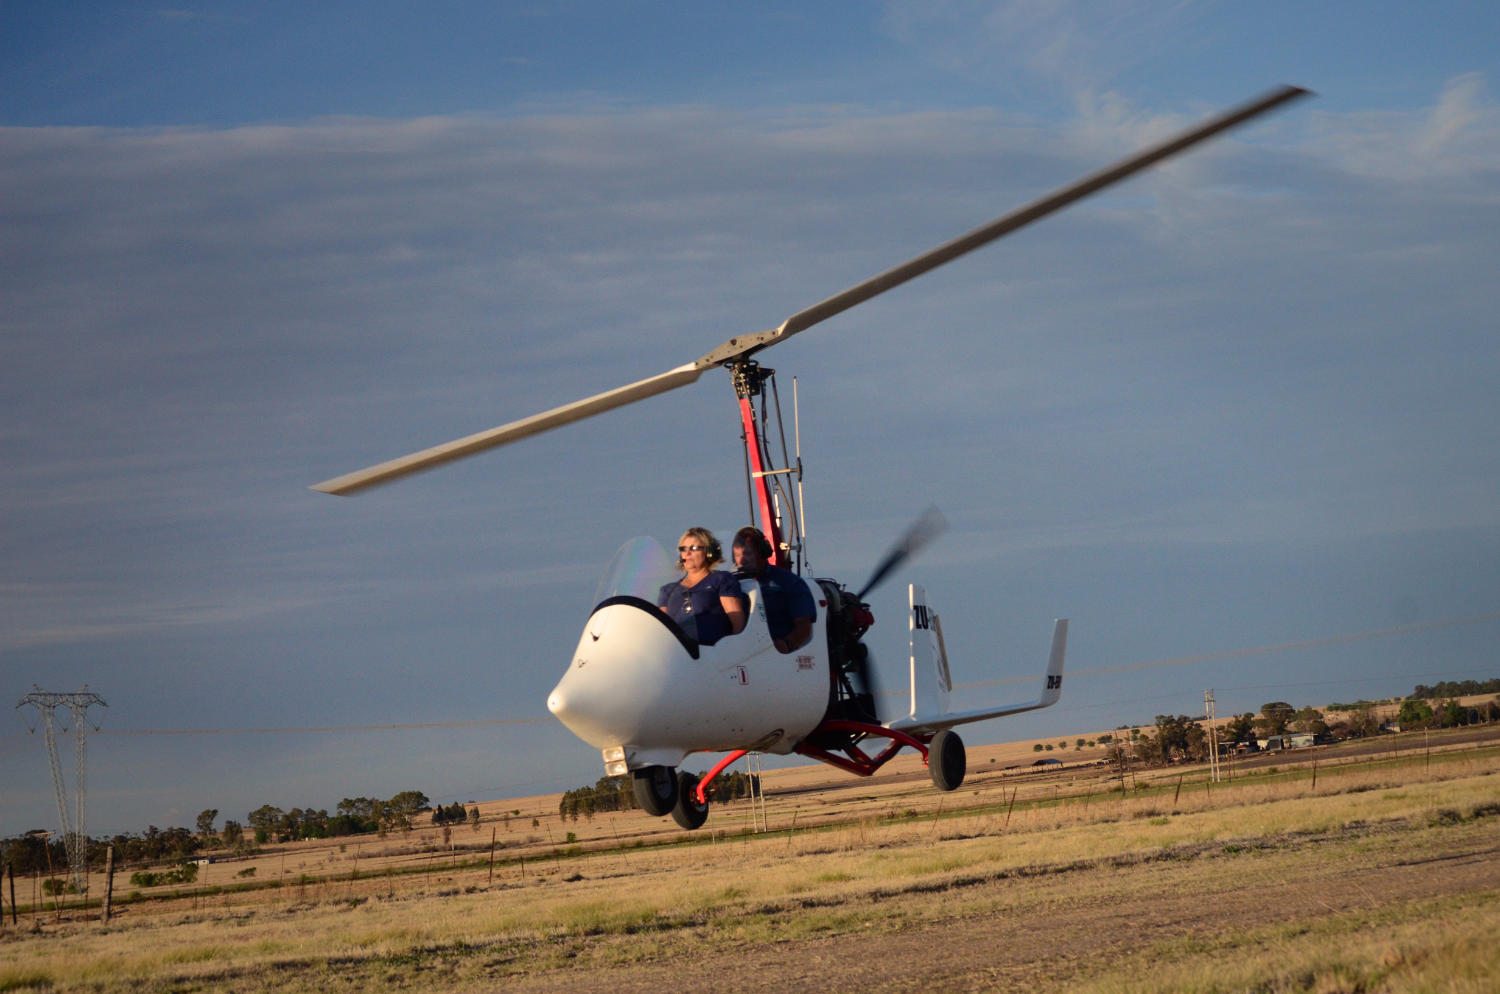 Gyrocopter pilot training